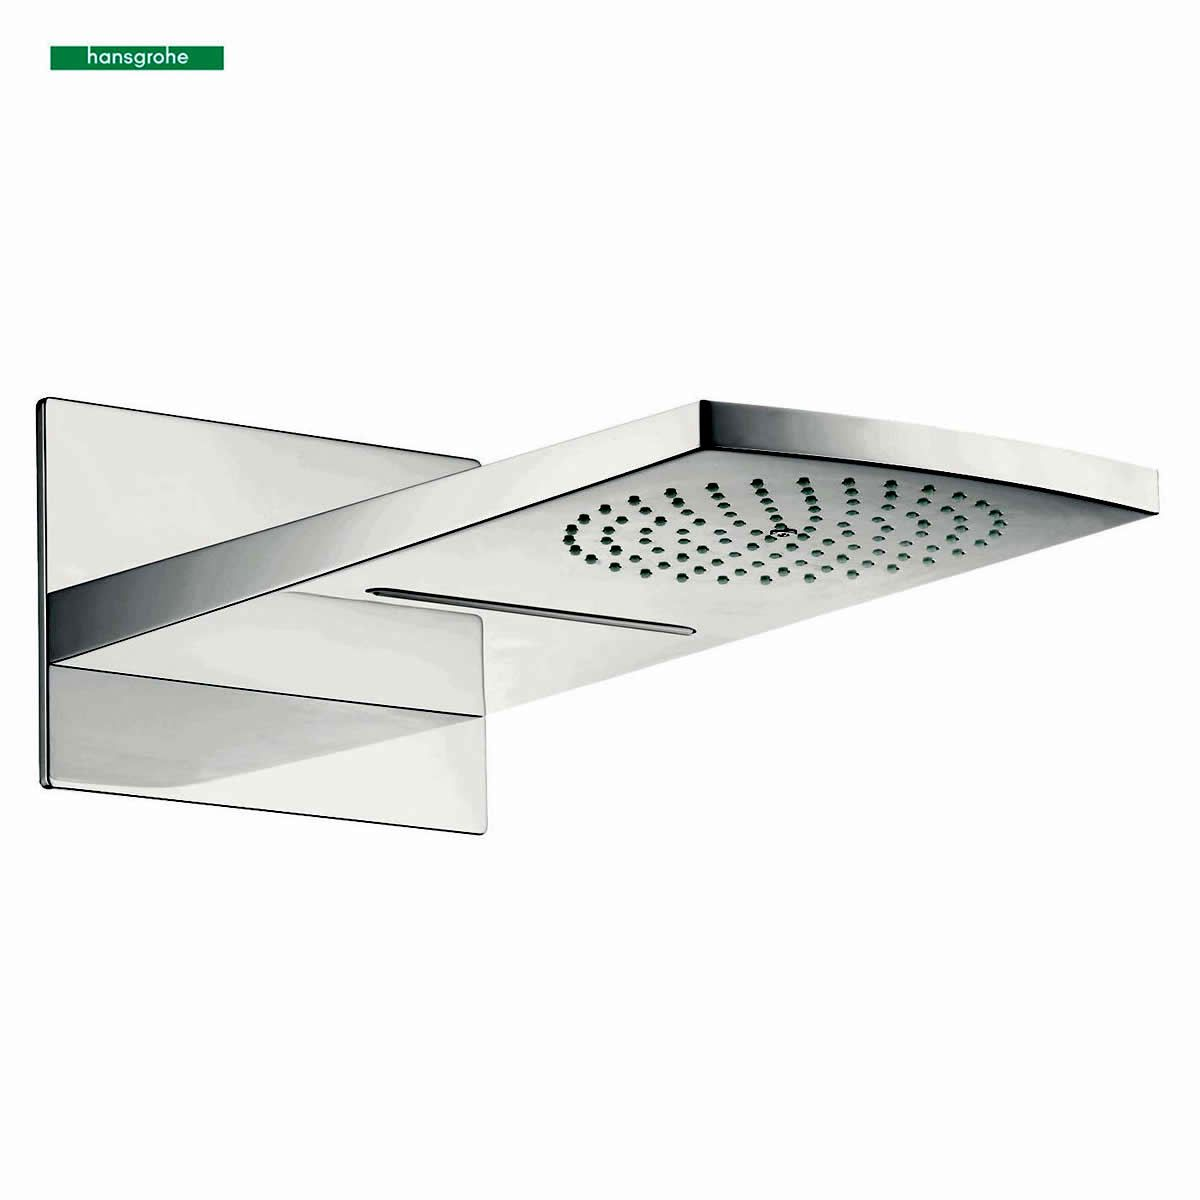 hansgrohe raindance rainfall 180 air 2jet overhead shower uk bathrooms. Black Bedroom Furniture Sets. Home Design Ideas